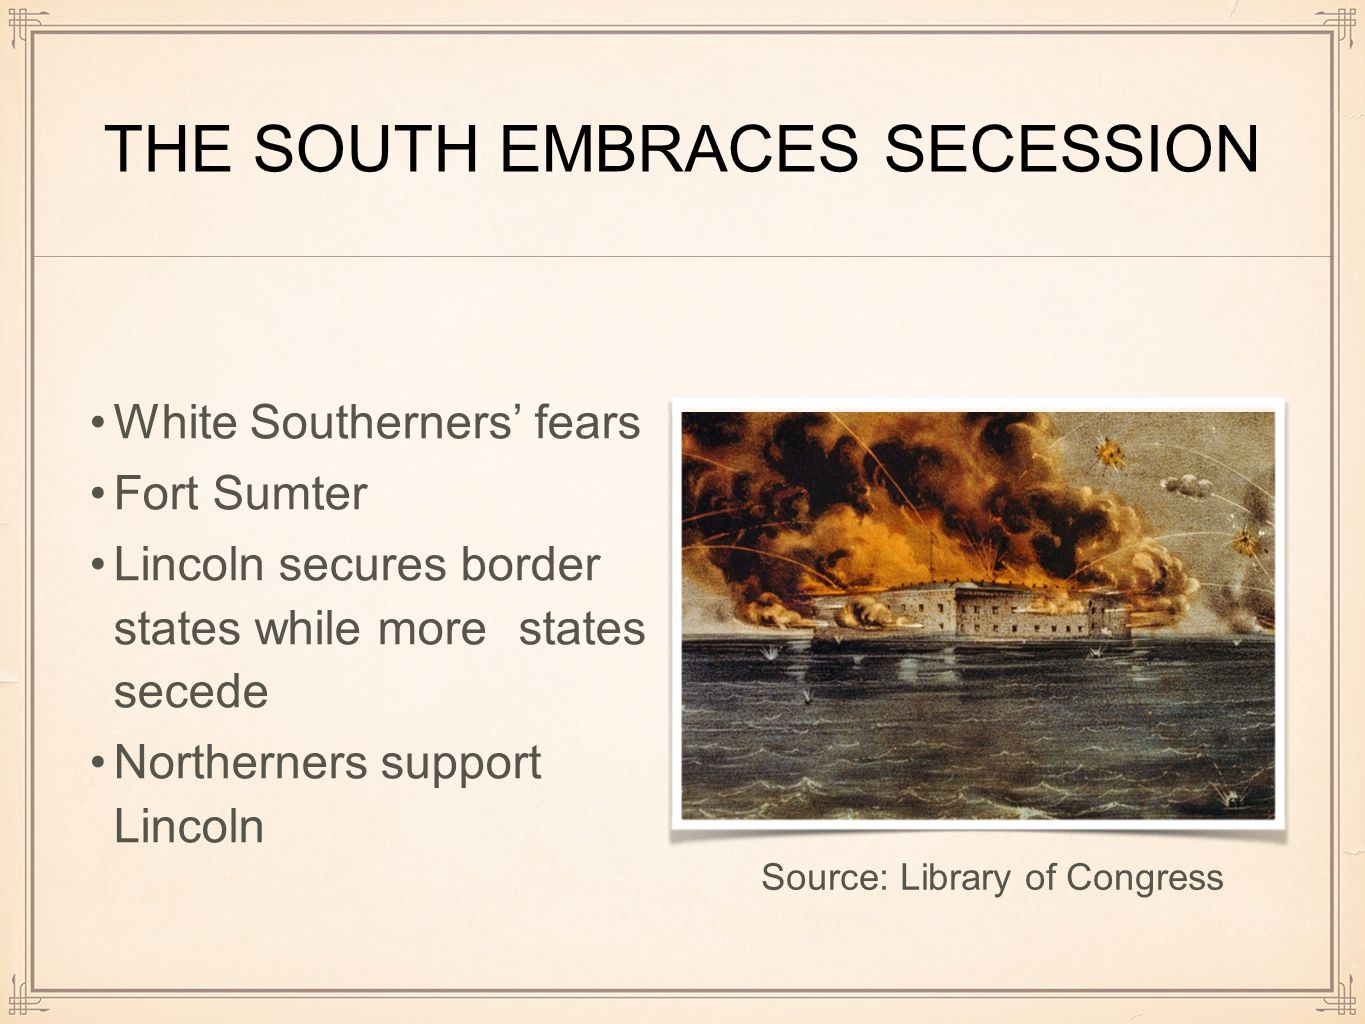 THE SOUTH EMBRACES SECESSION White Southerners' fears Fort Sumter Lincoln secures border states while more states secede Northerners support Lincoln Source: Library of Congress